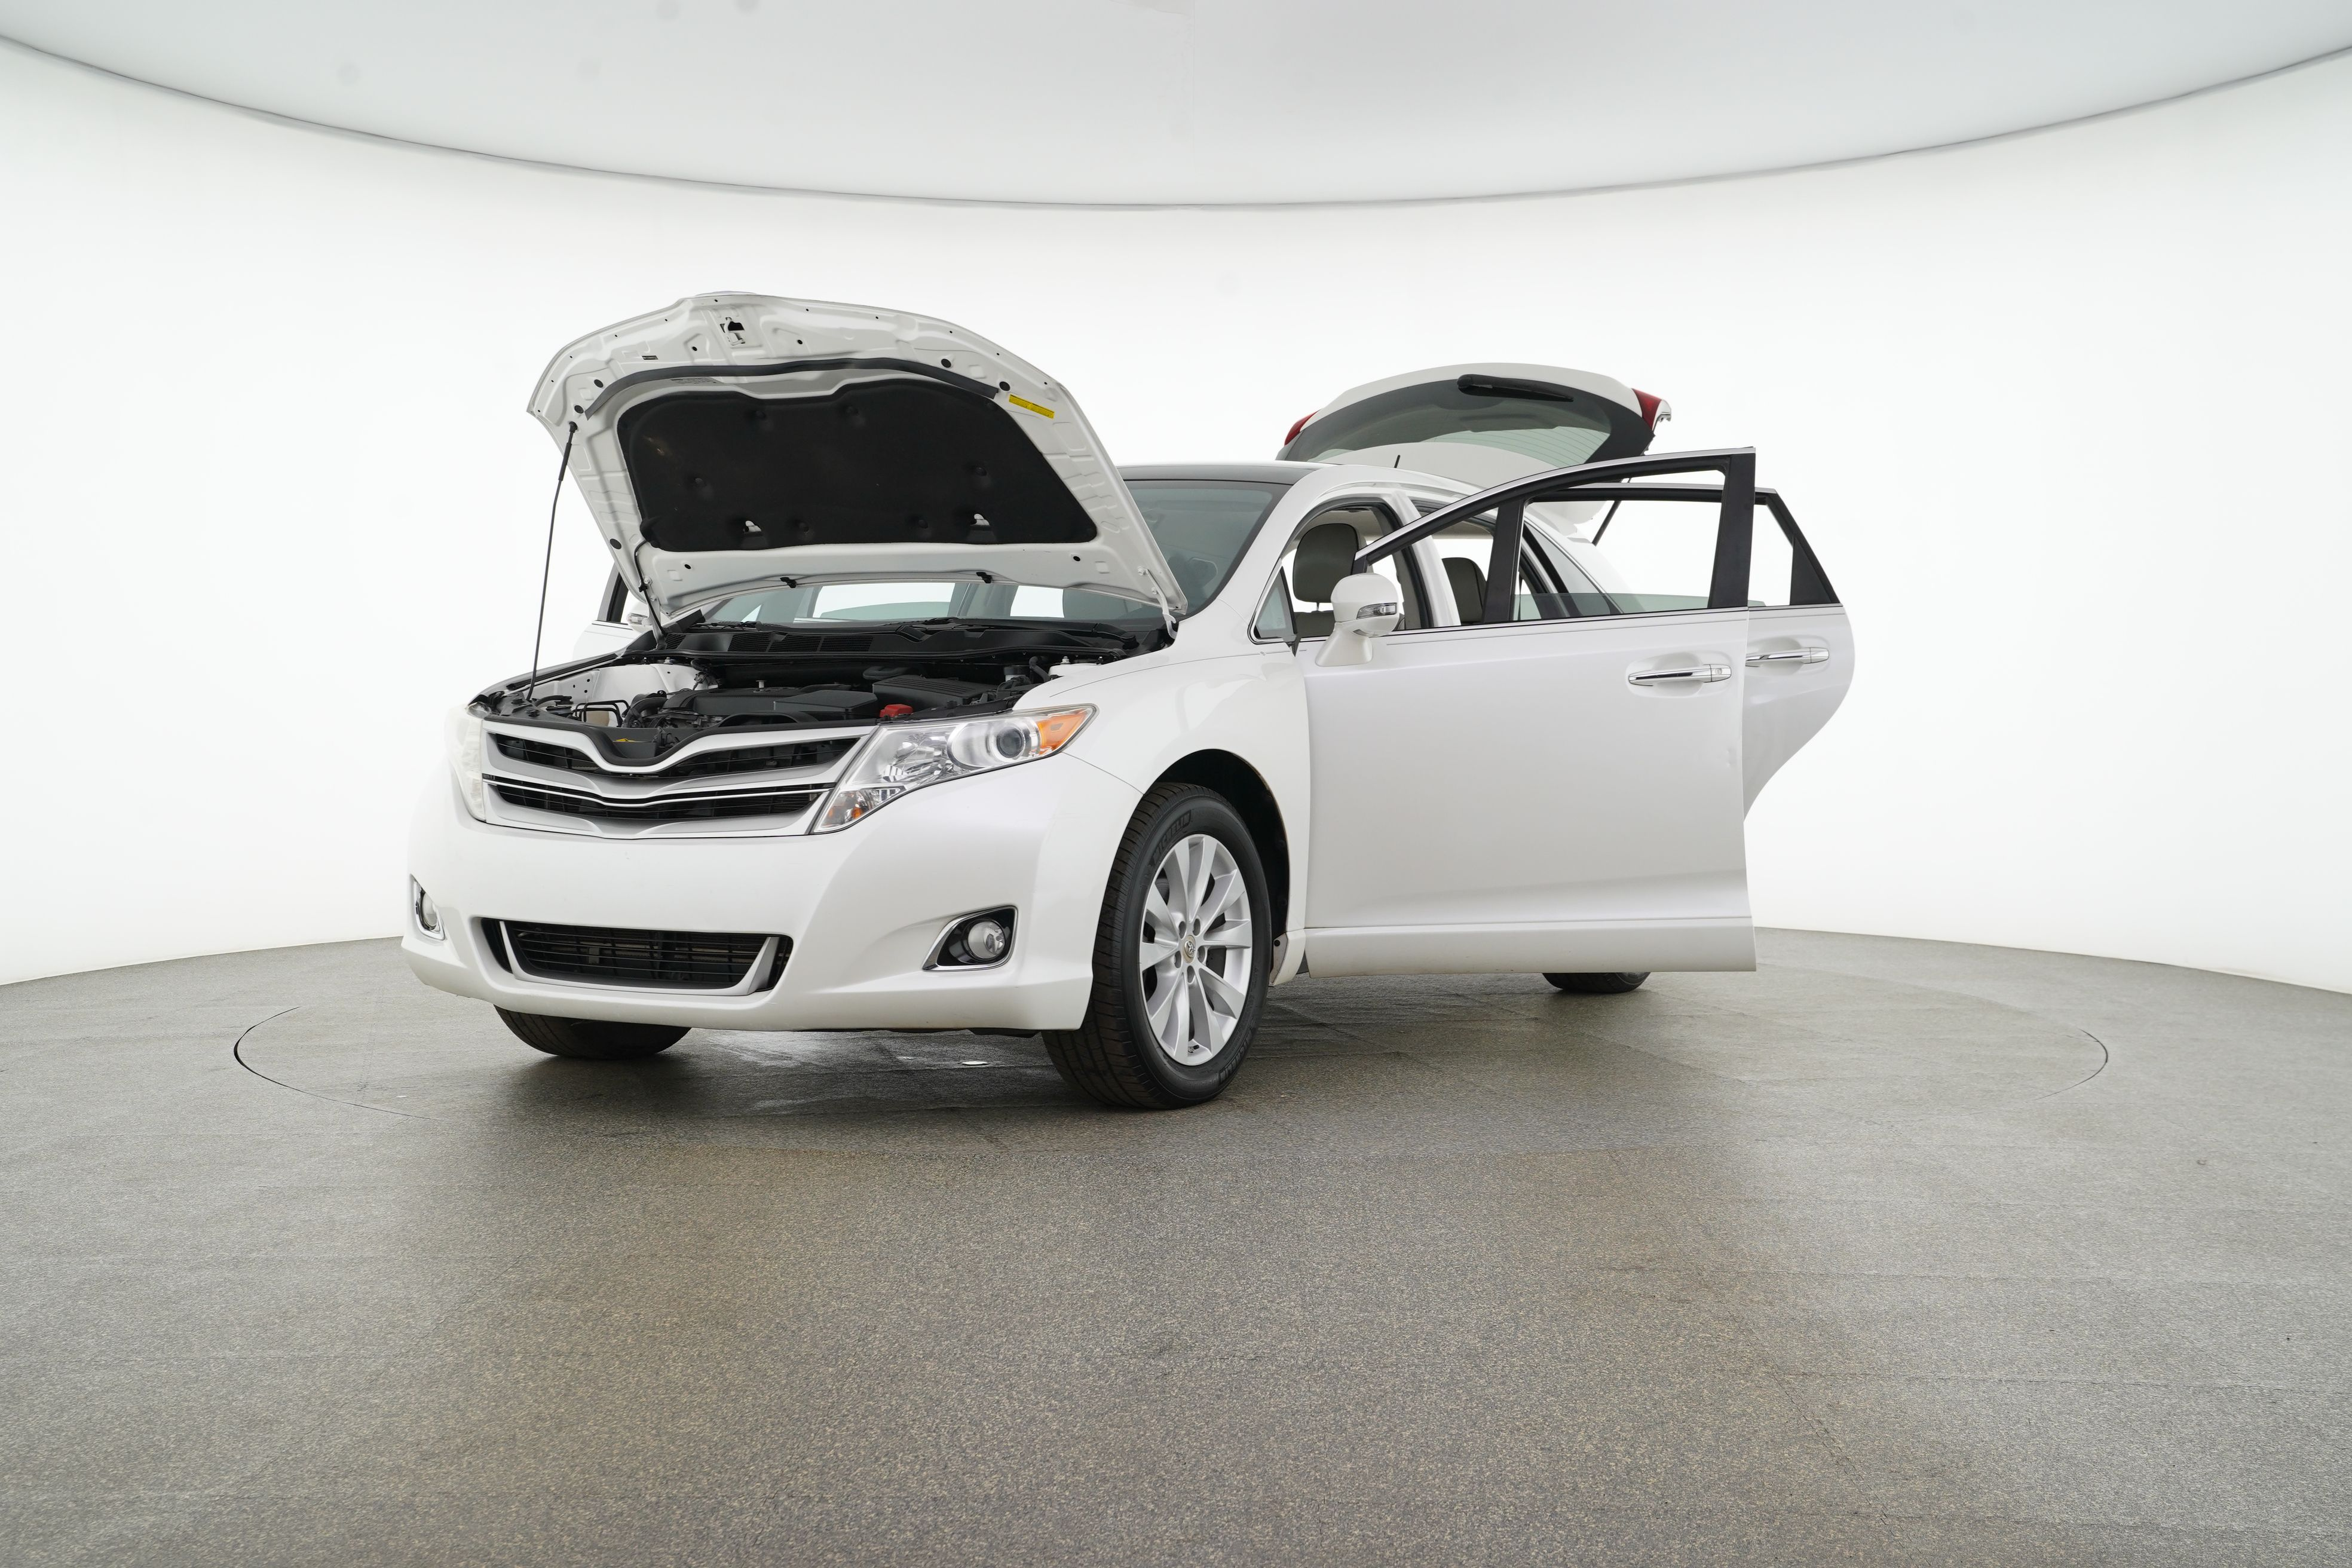 Pre-Owned 2013 Toyota Venza XLE